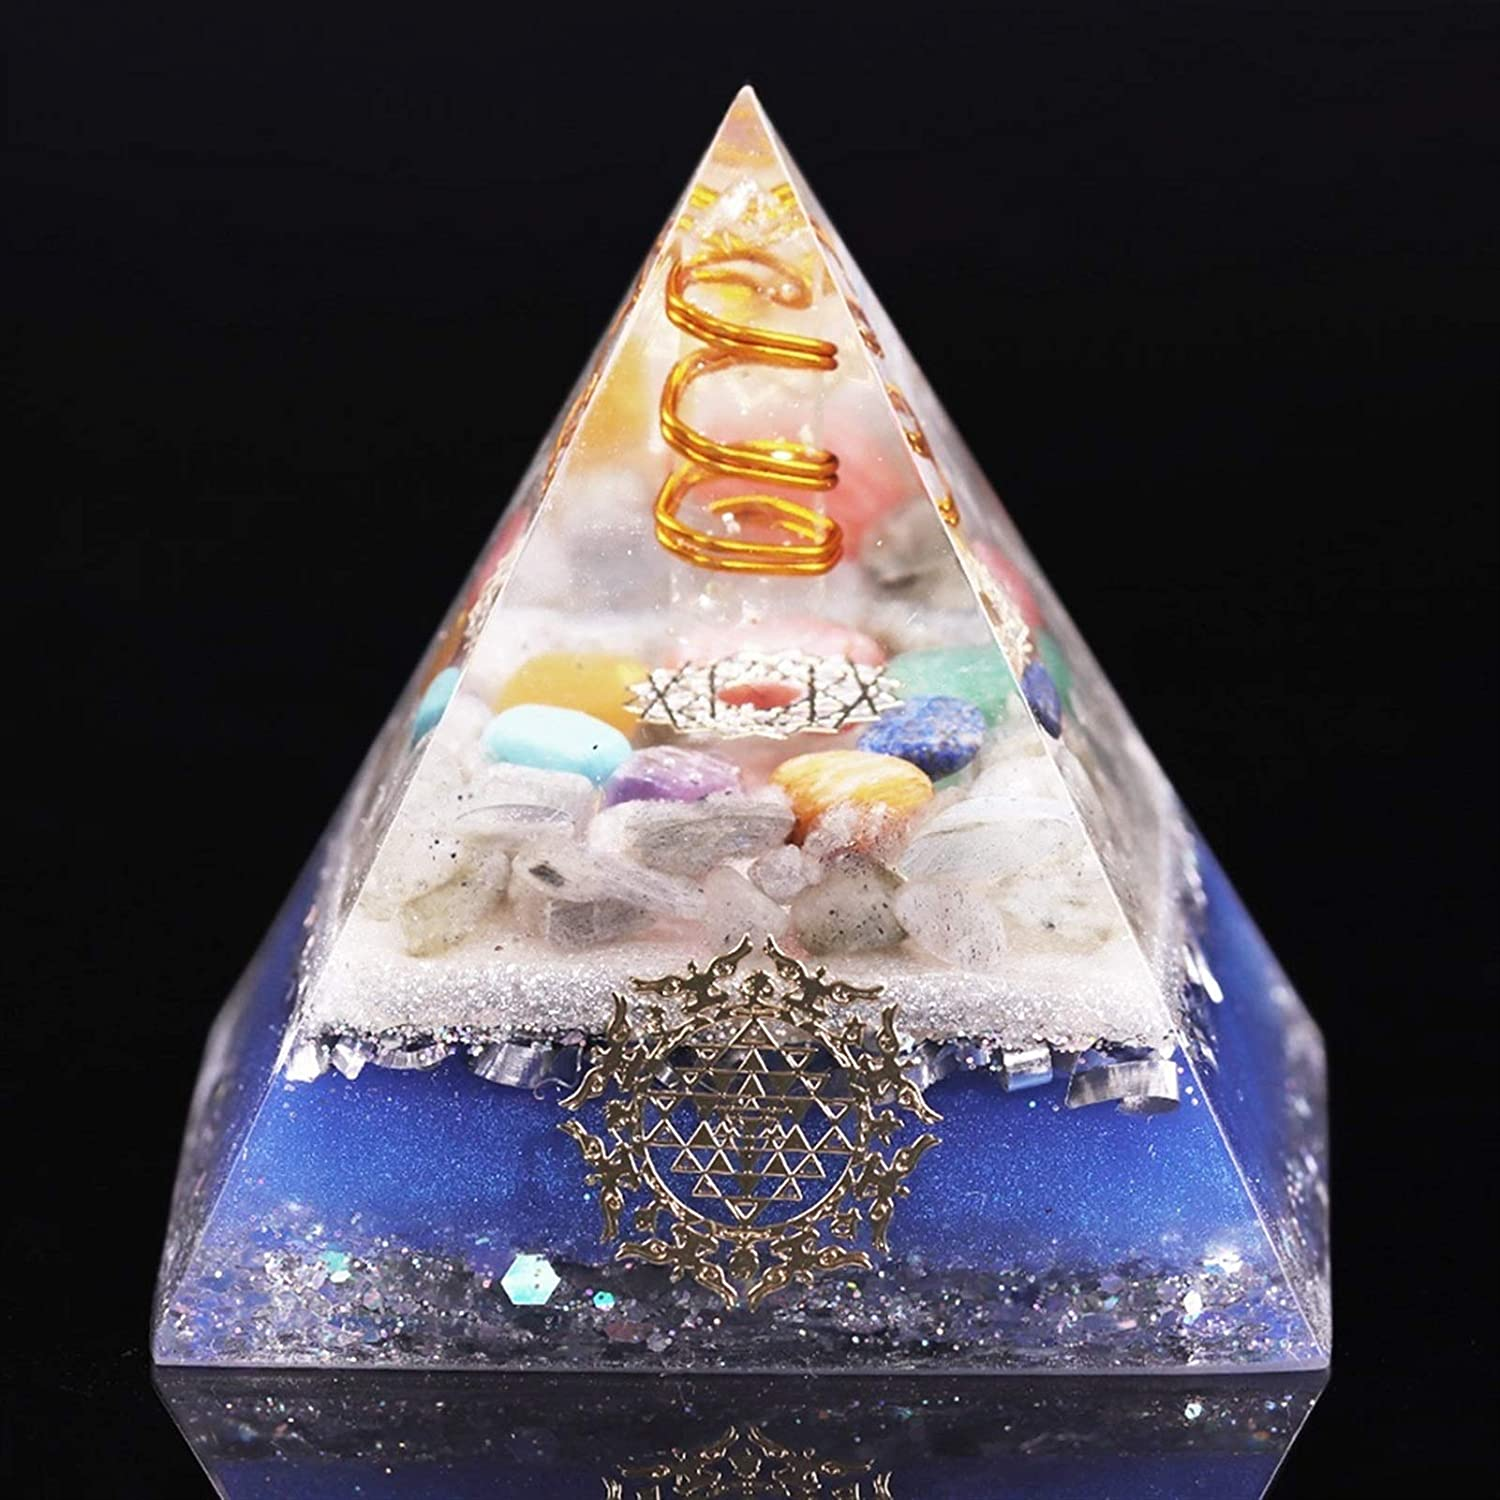 YELVQI Cheap mail order specialty store 7 Chakra Crystal Stones Pyramid Pyr Max 57% OFF Orgonite Reiki Orgone